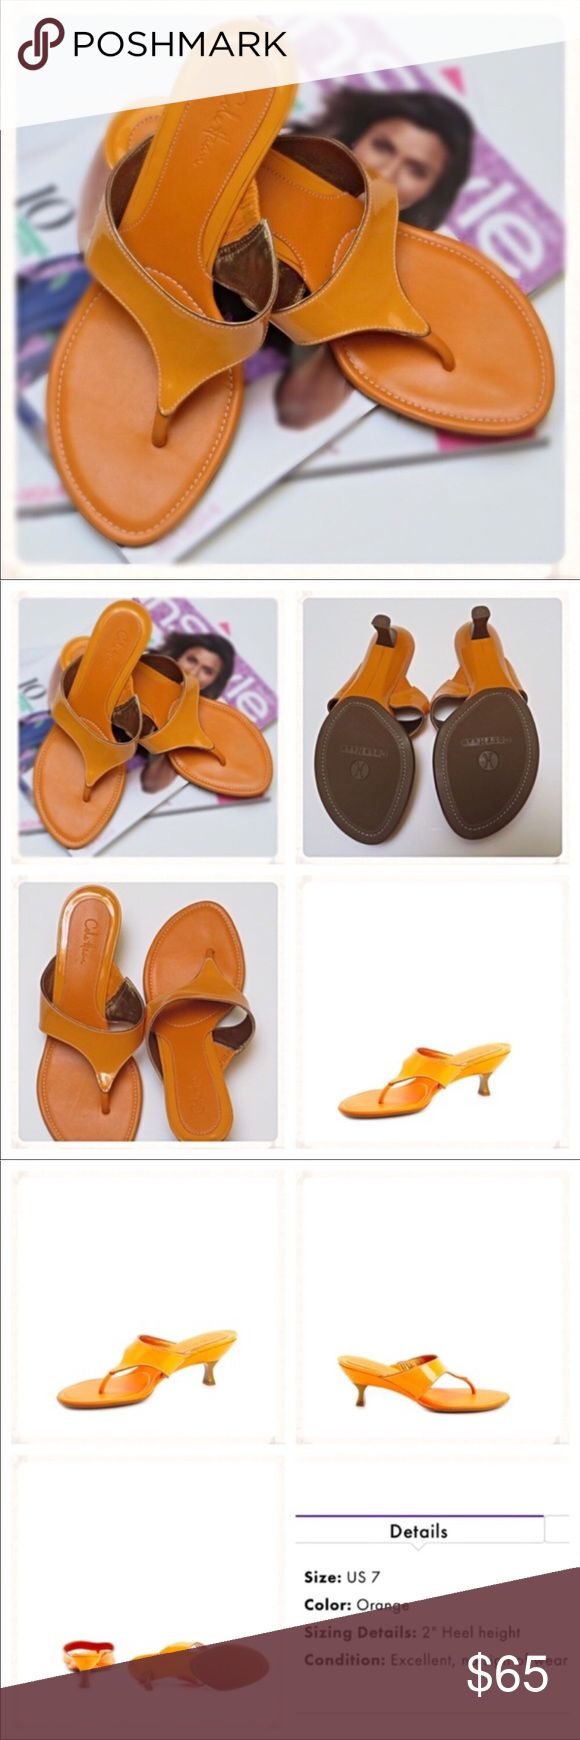 """EUC Cole Haan """"Franny"""" Sandals - Orange EUC Cole Haan Franny Mid Heel Thong Sandals HEELS HEIGHT:2-2.5 inches WIDTH:M COLOUR: Orange Slight imperfections shown in last picture. None are visible while wearing shoes. No box. NO TRADES! Please use offer button to negotiate. Thanks! Cole Haan Shoes Sandals"""